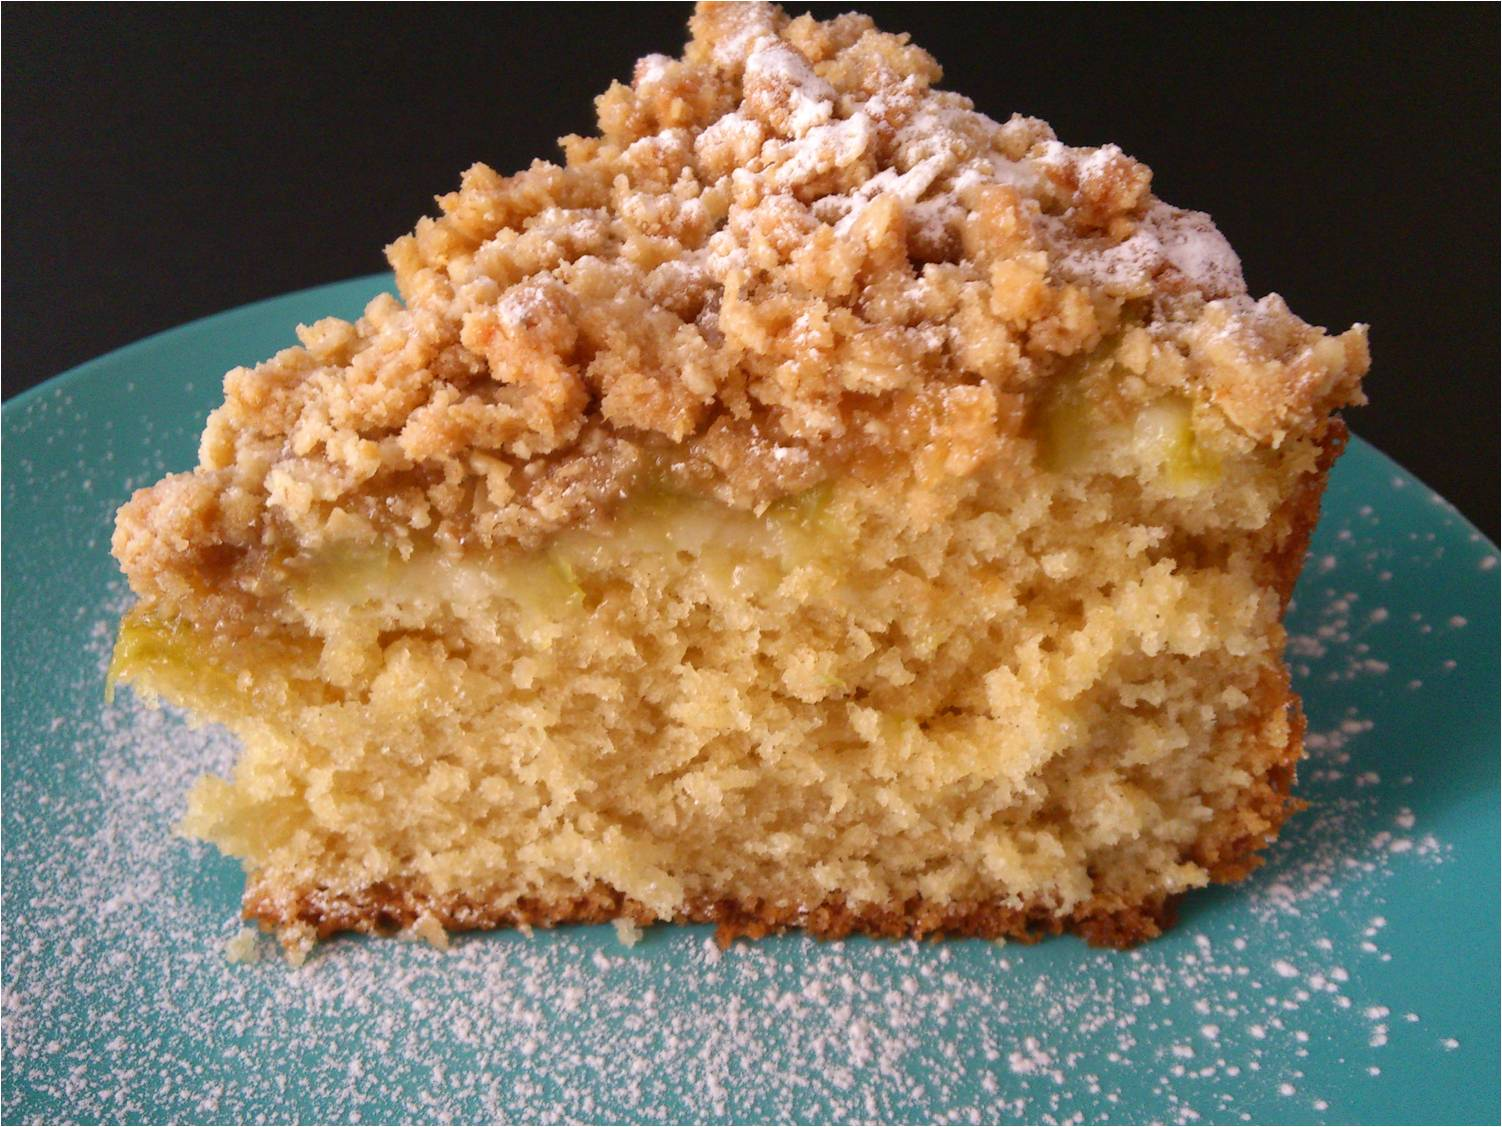 Utterly Scrummy Food For Families: Rhubarb Crumble Cake